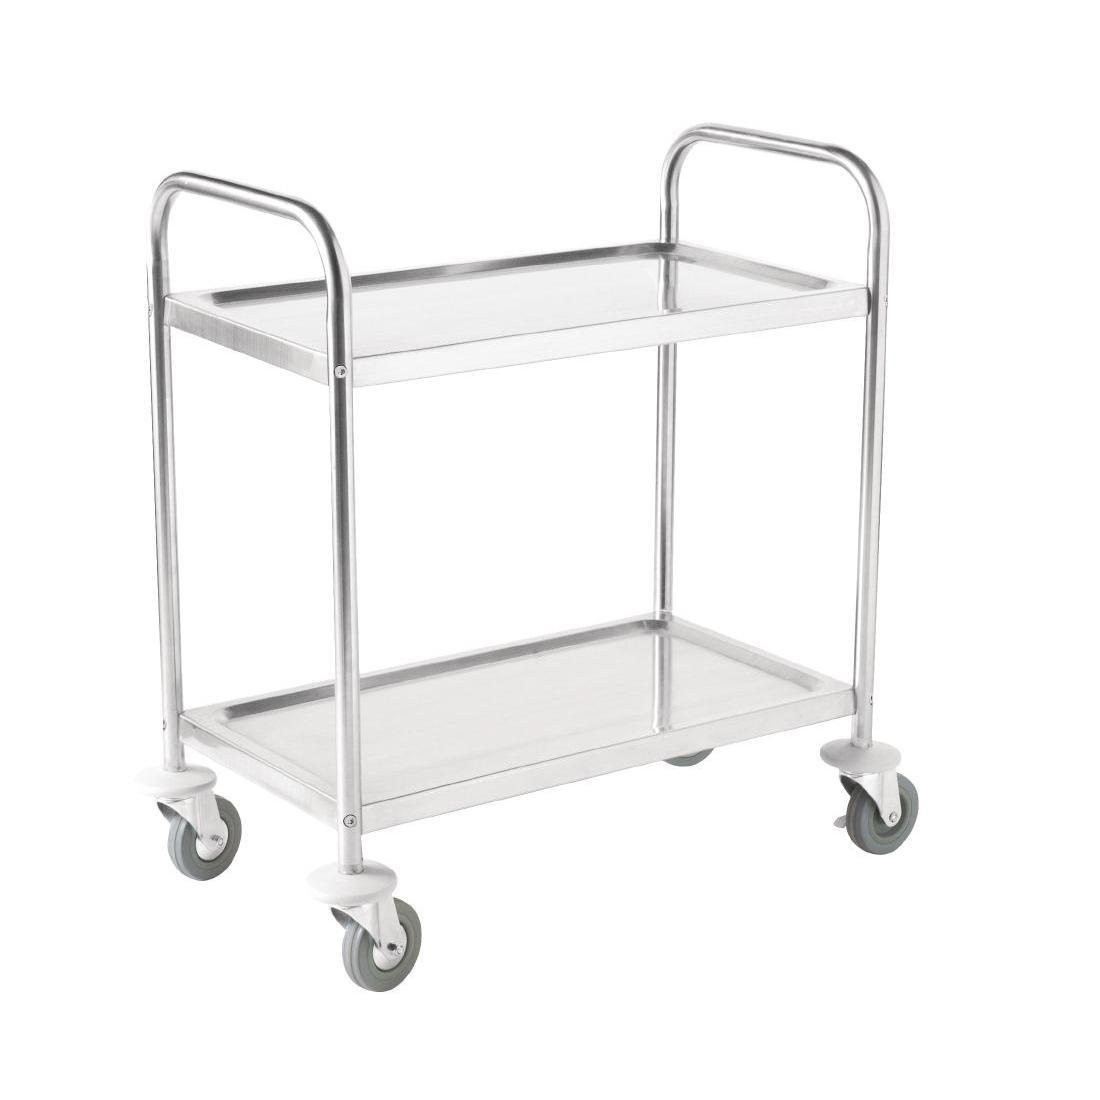 Vogue Stainless Steel 2 Tier Clearing Trolley Large - Each - F998